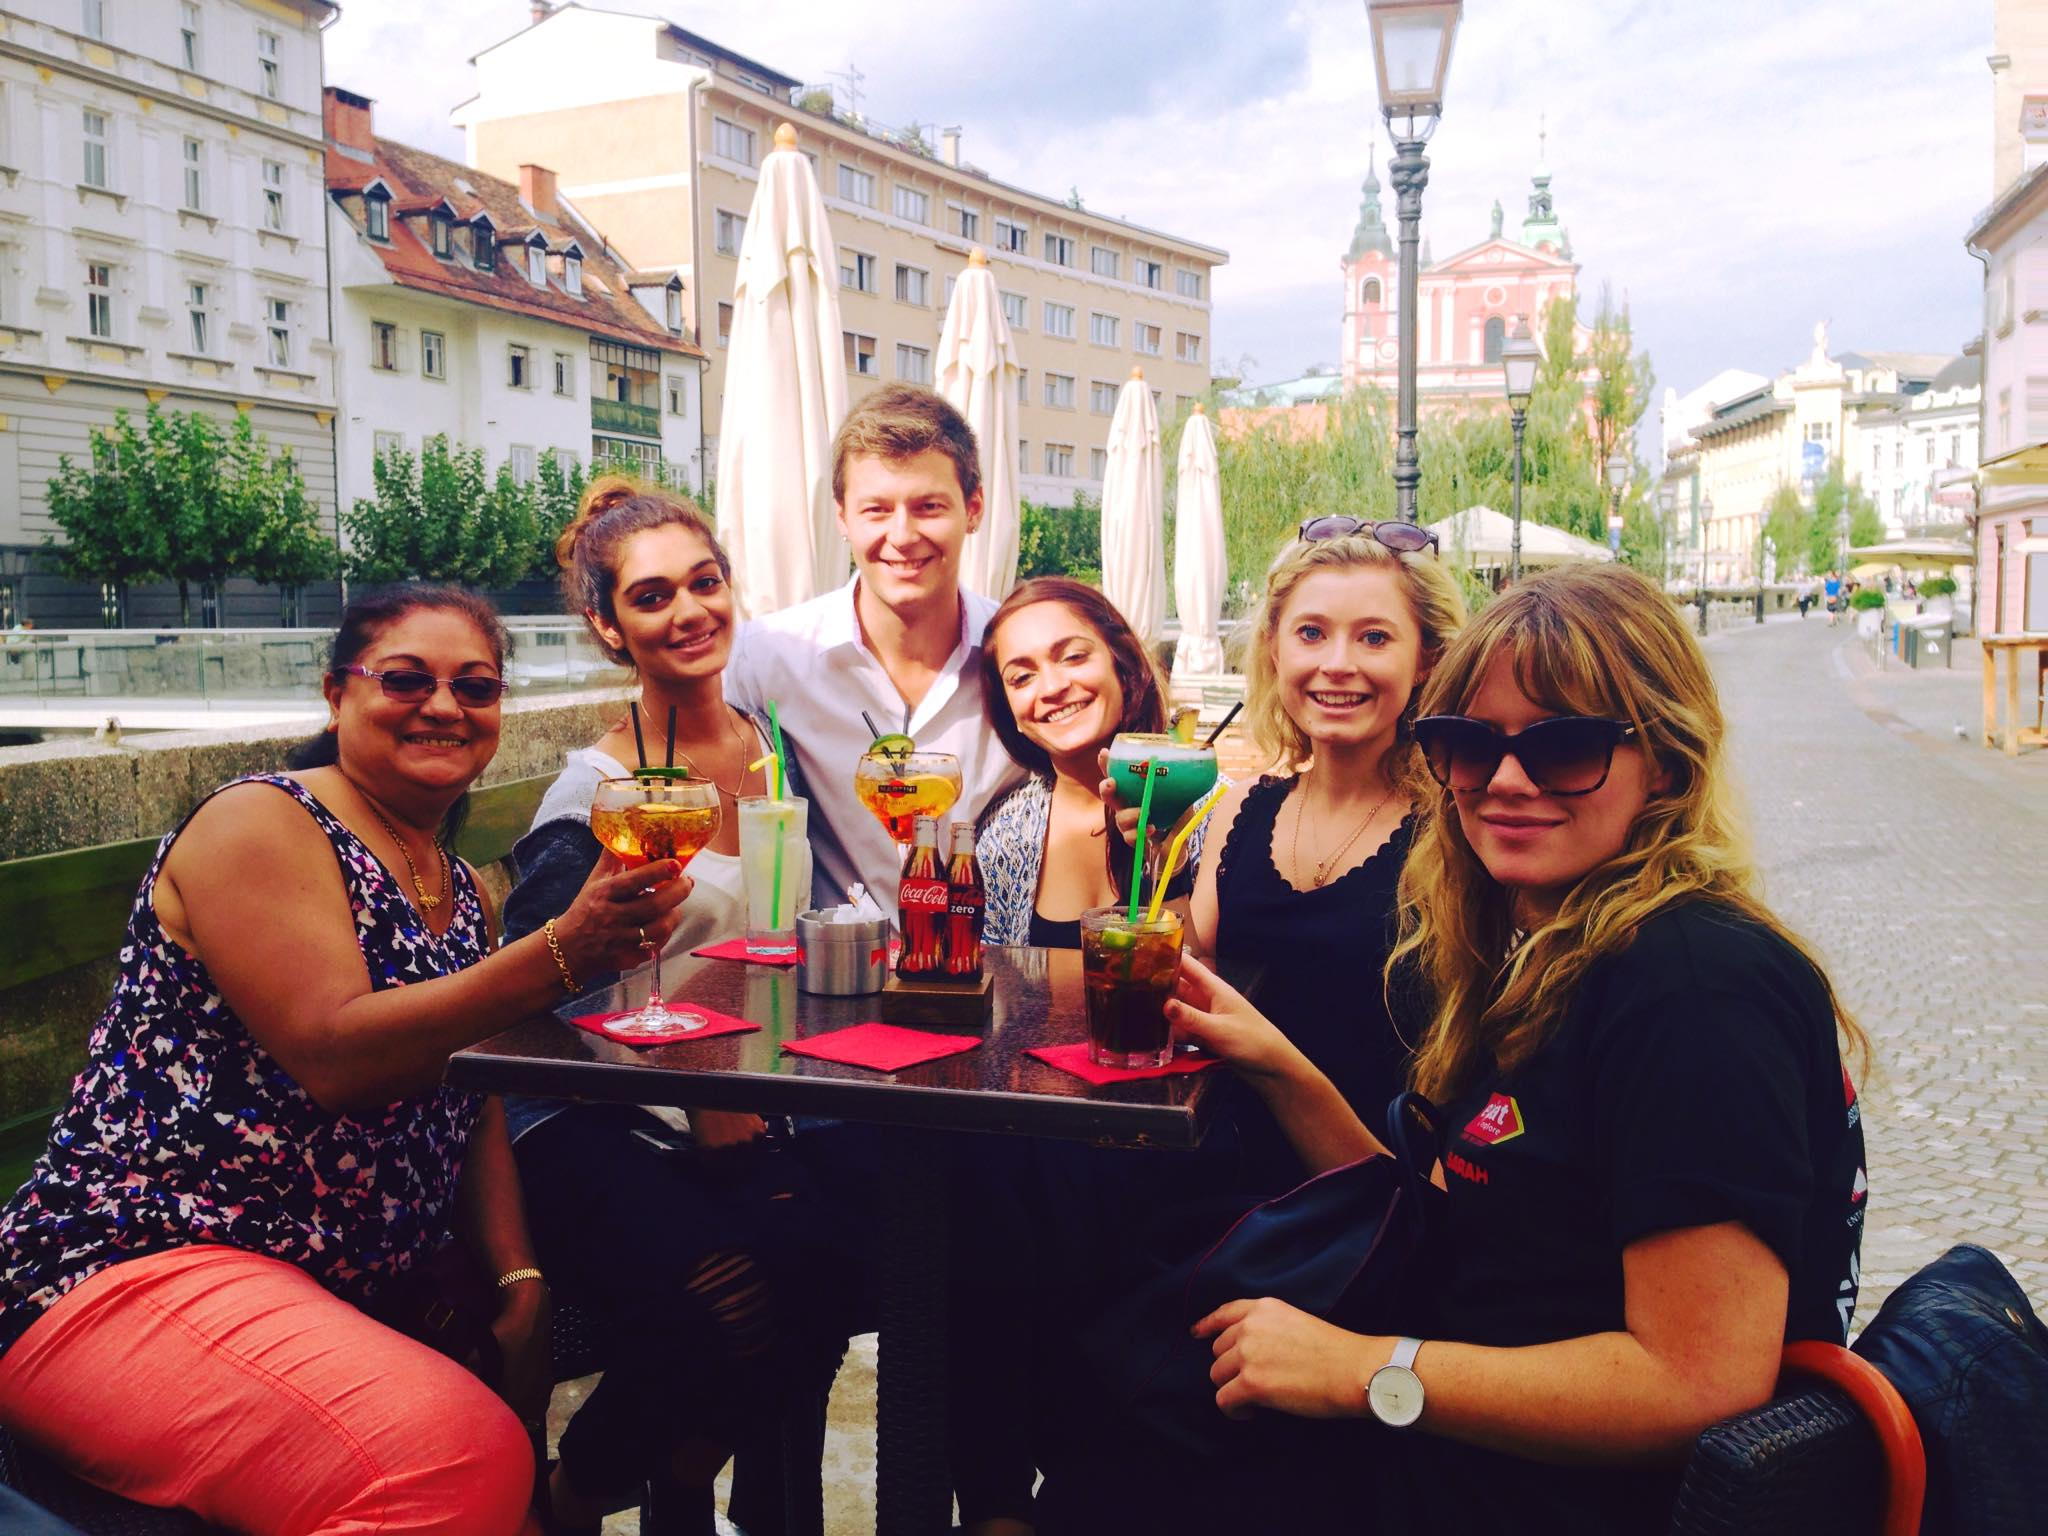 Having a drink in Ljubljana, Slovenia.